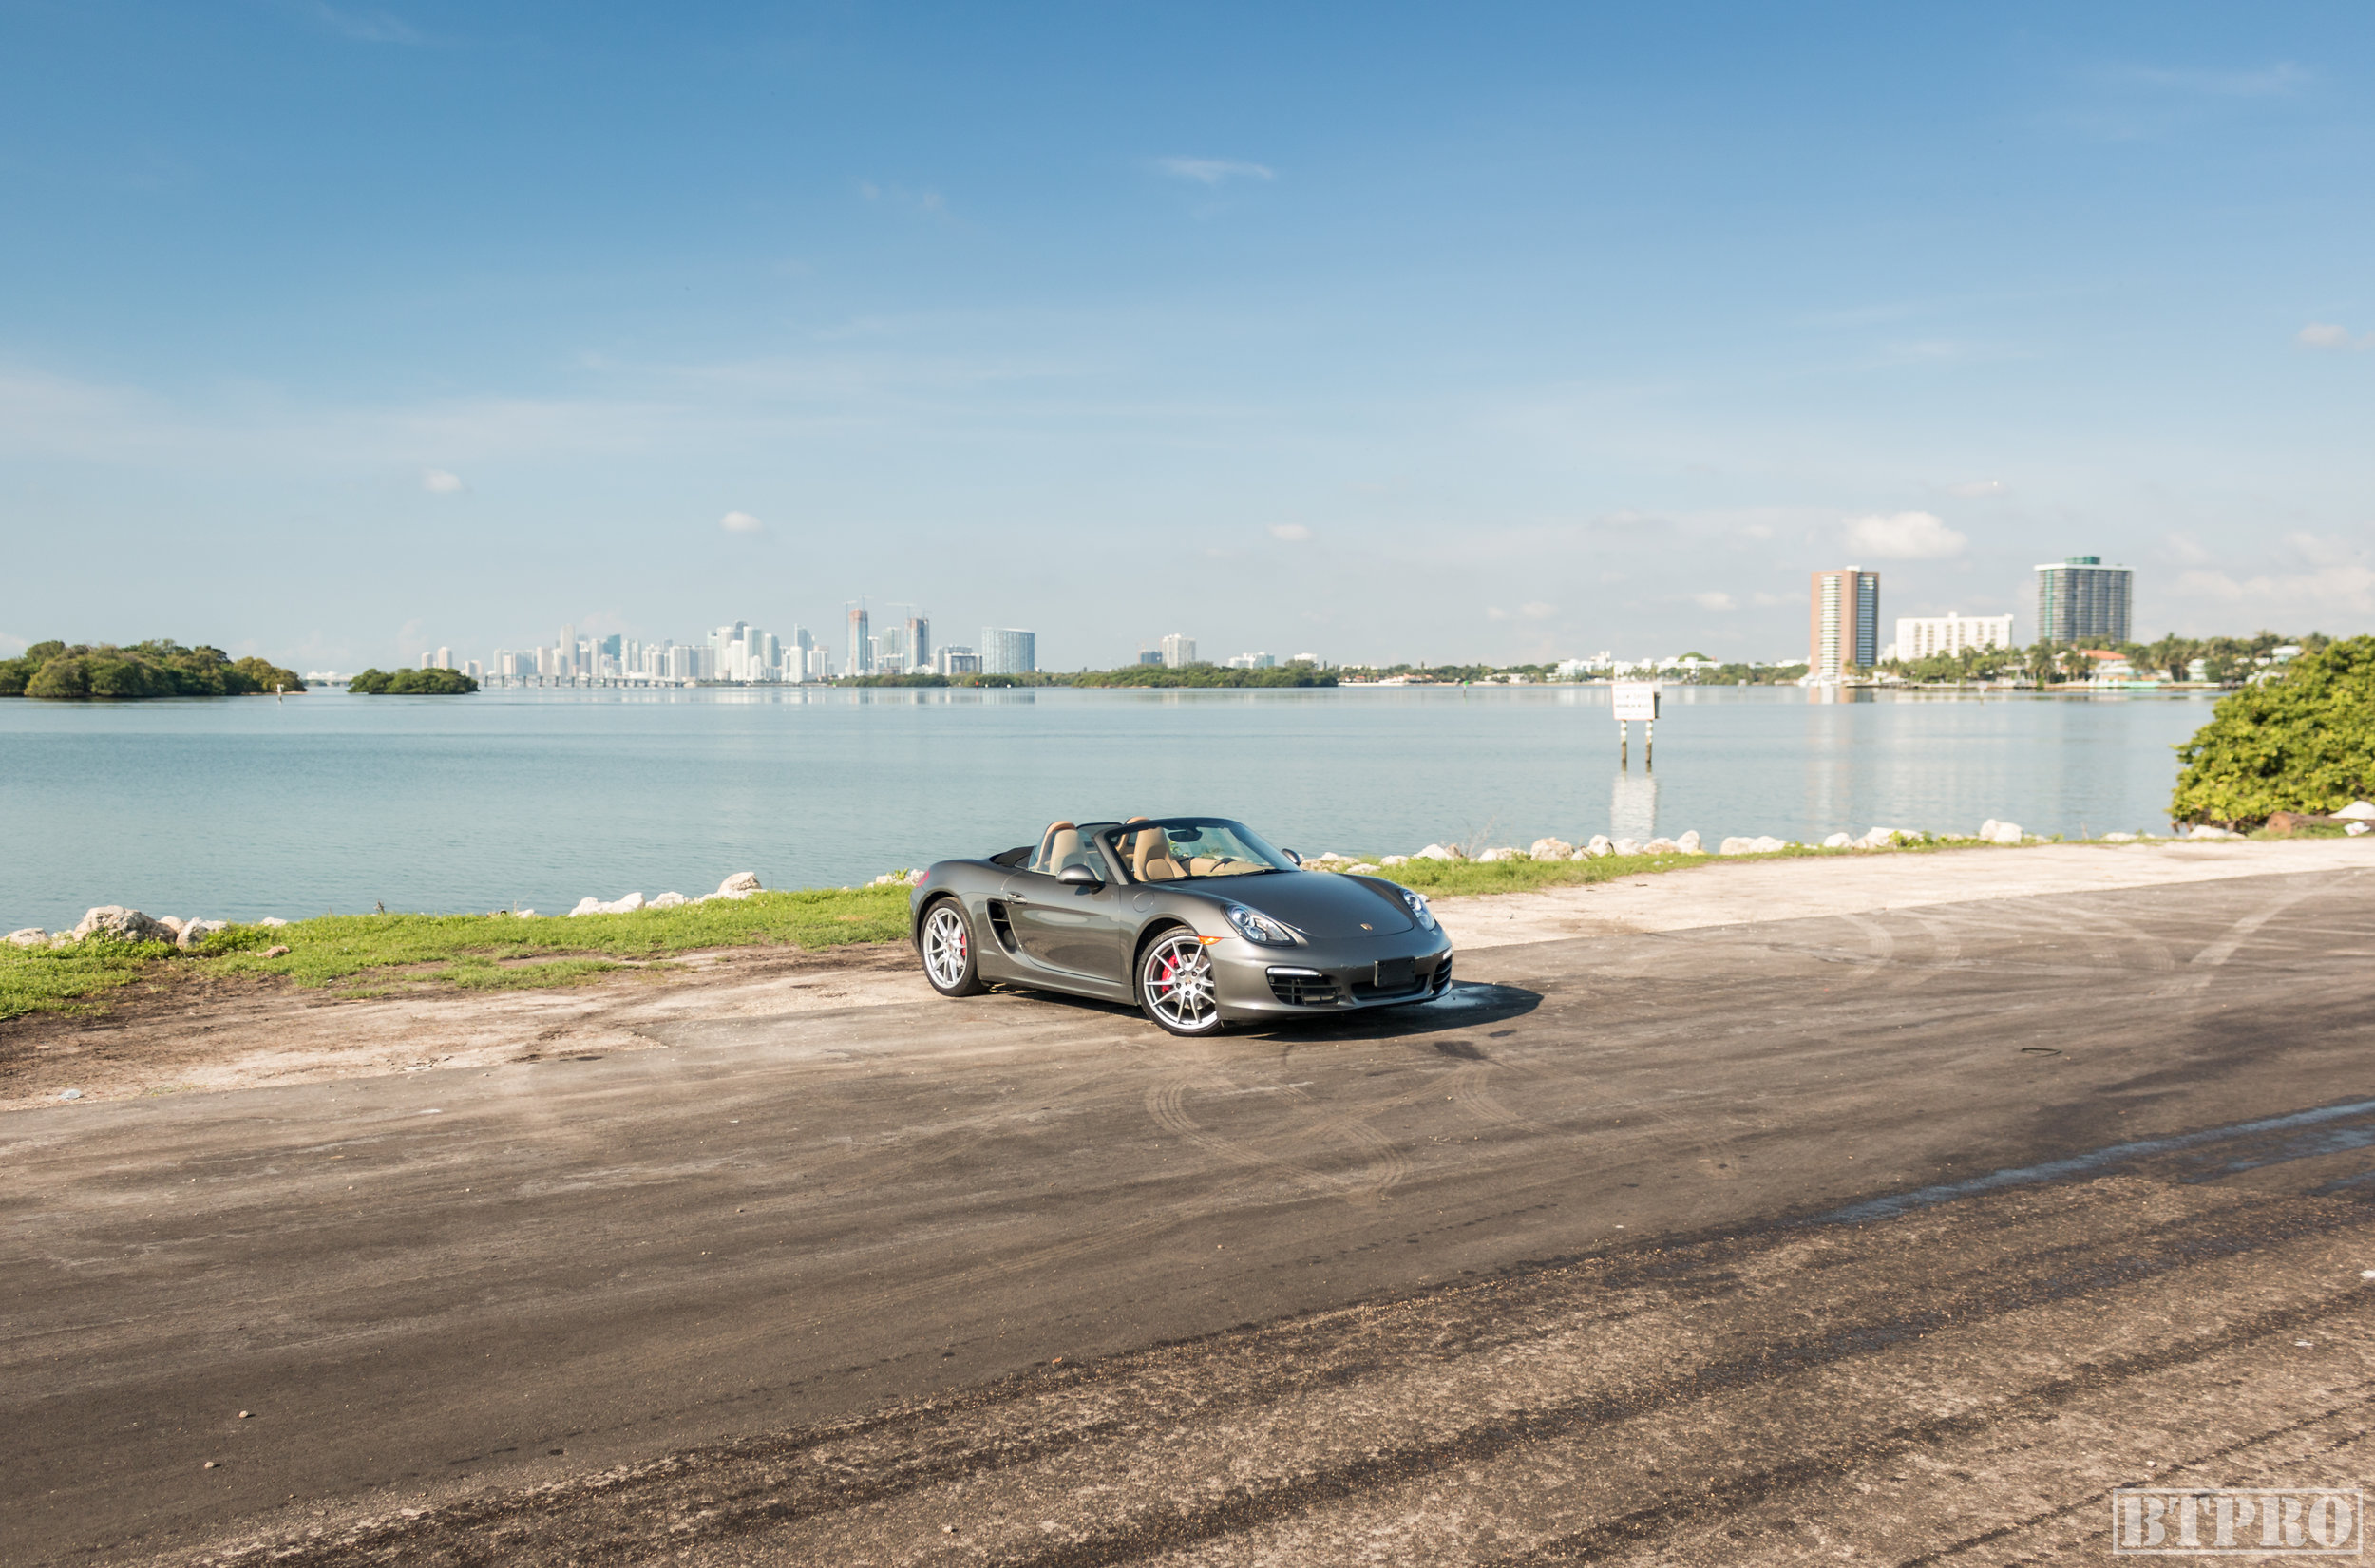 porsche, porsche boxter, german cars, cars ,car photo, car photography, miami, miami beach